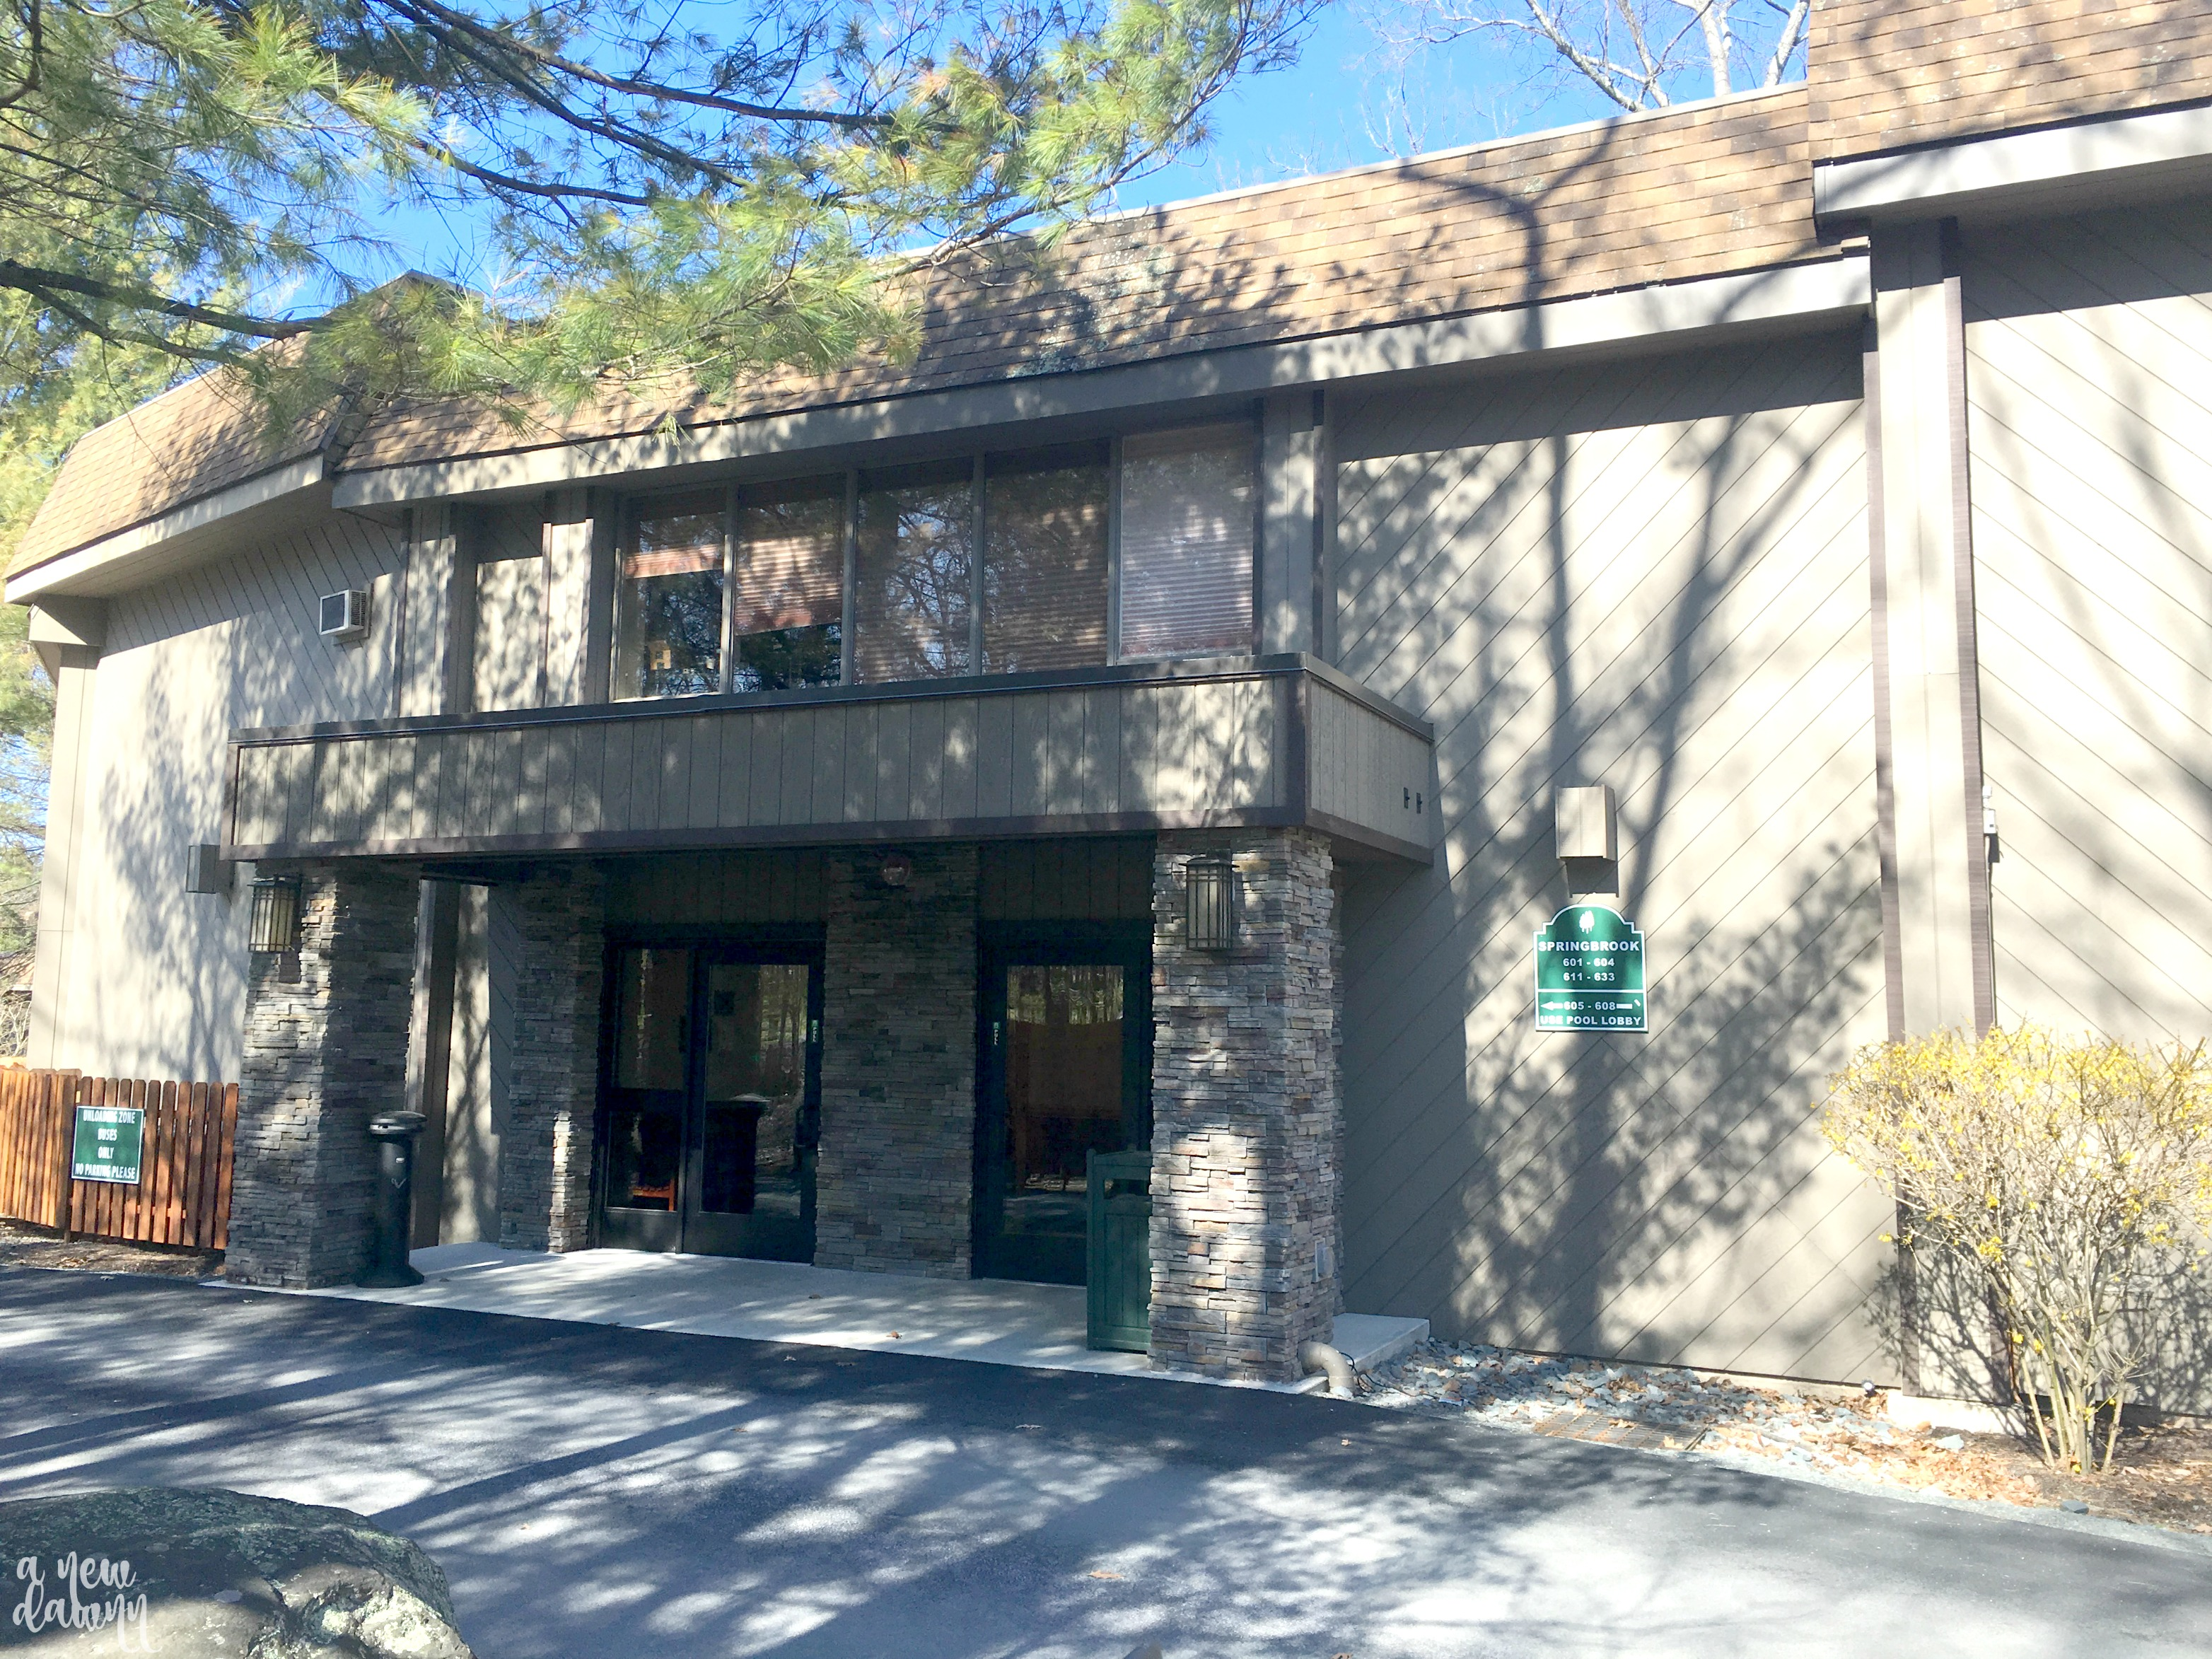 Woodloch-building-entrance